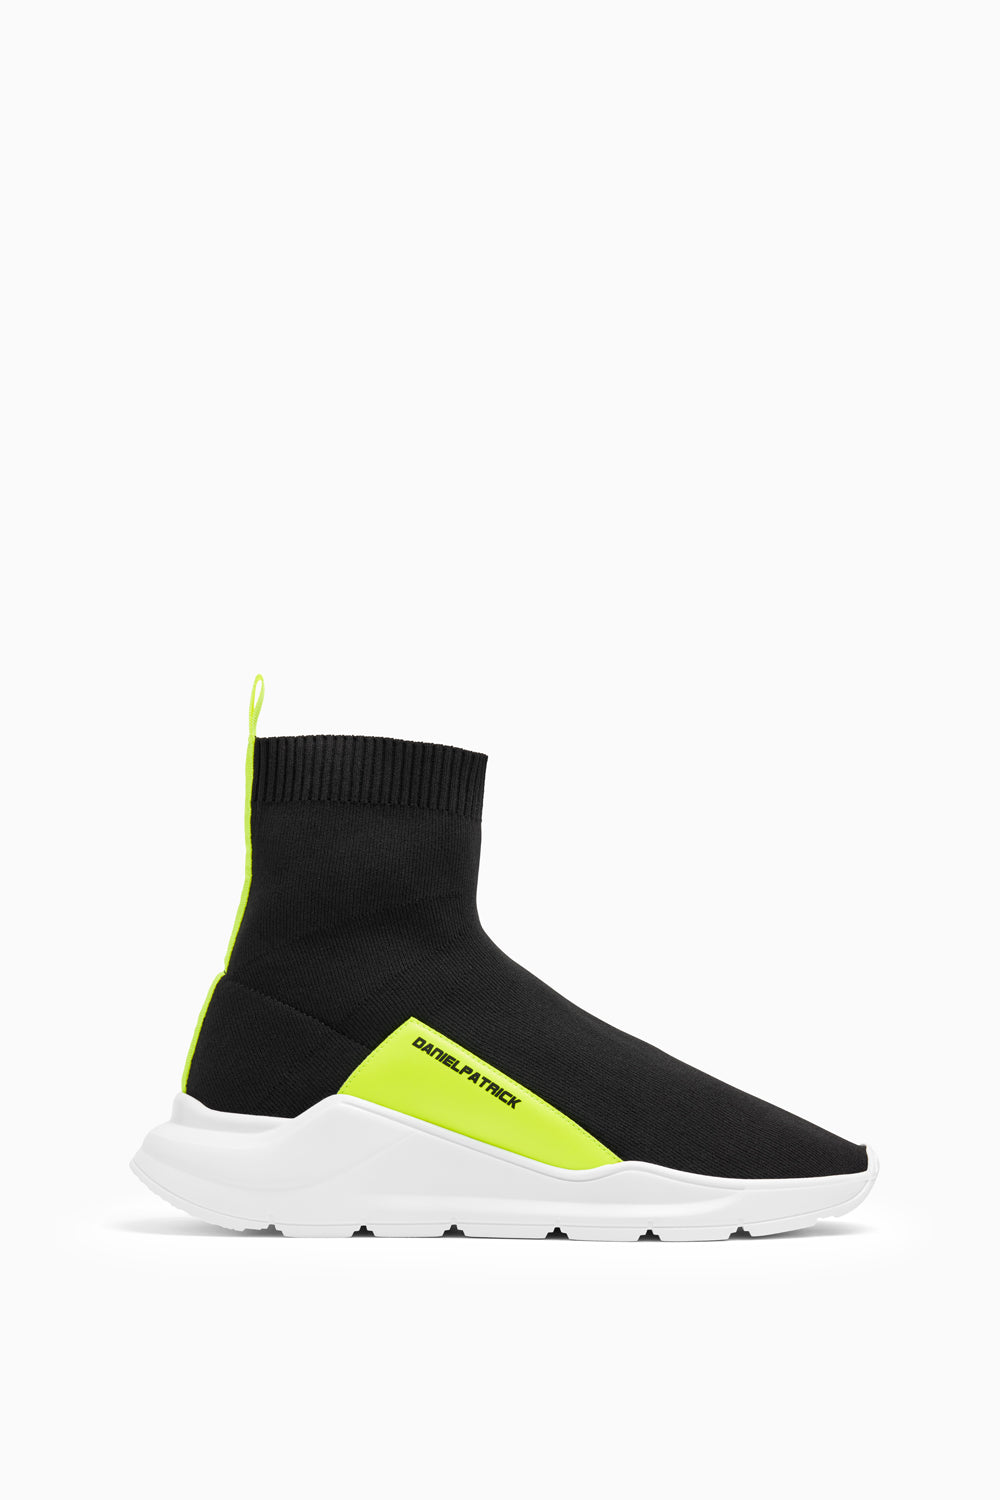 sock runner sneaker in black/neon yellow by daniel patrick